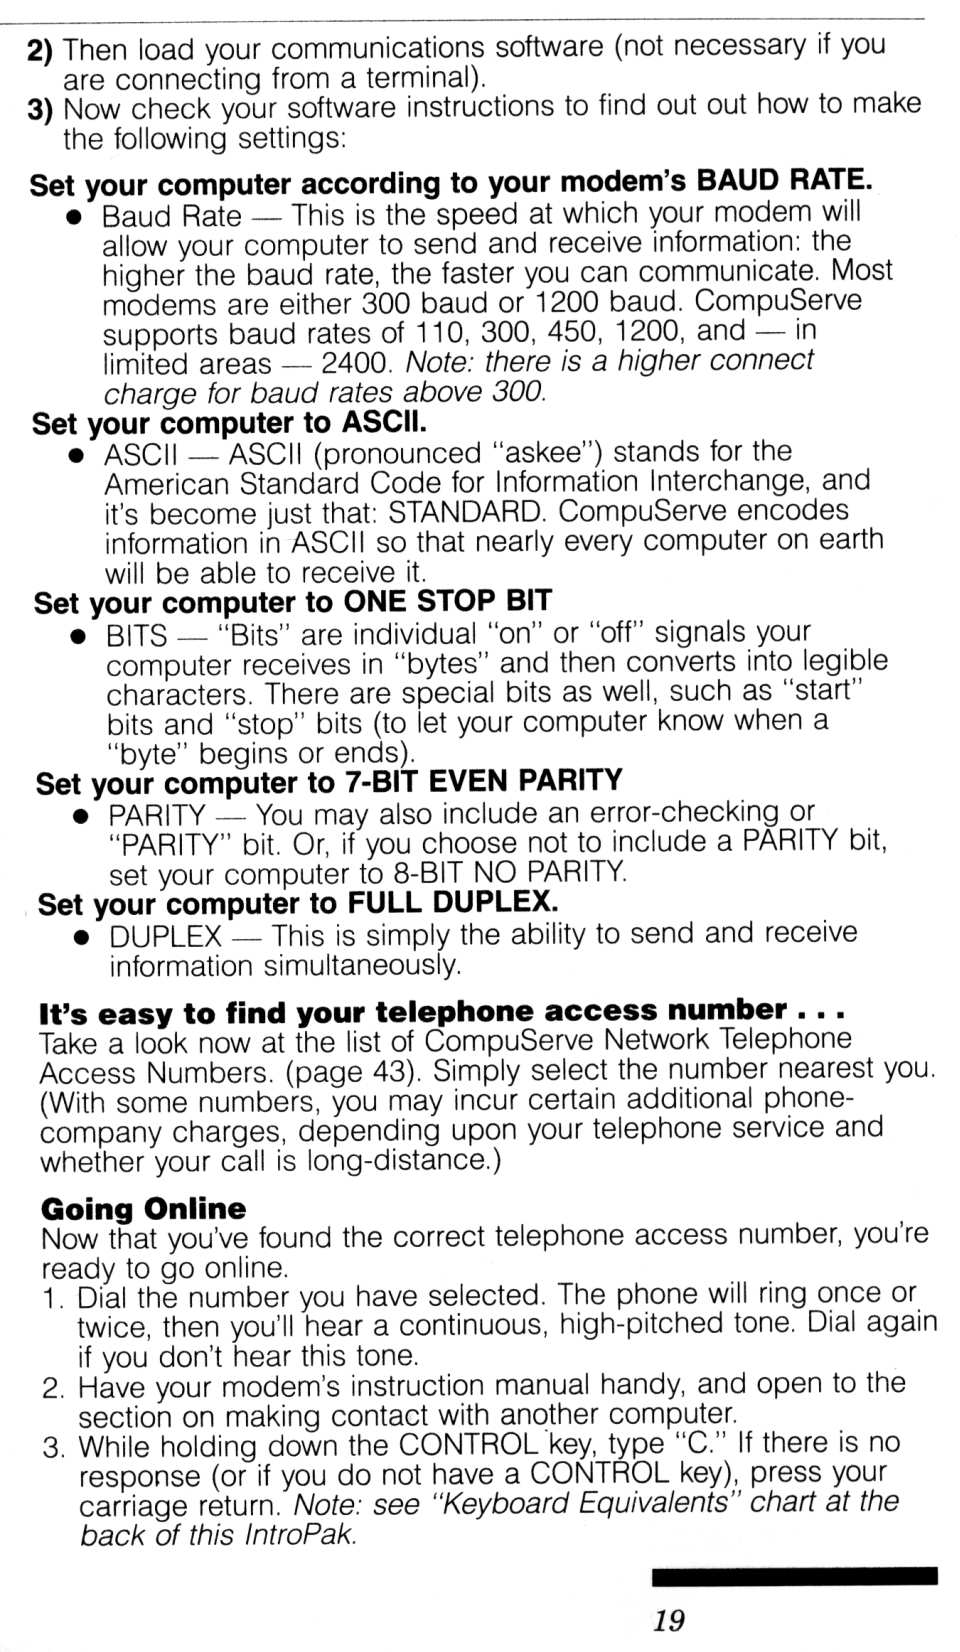 [CompuServe IntroPak page 19/44  Start Getting the Most from Your Computer Now, It's Easy! (2/6)]